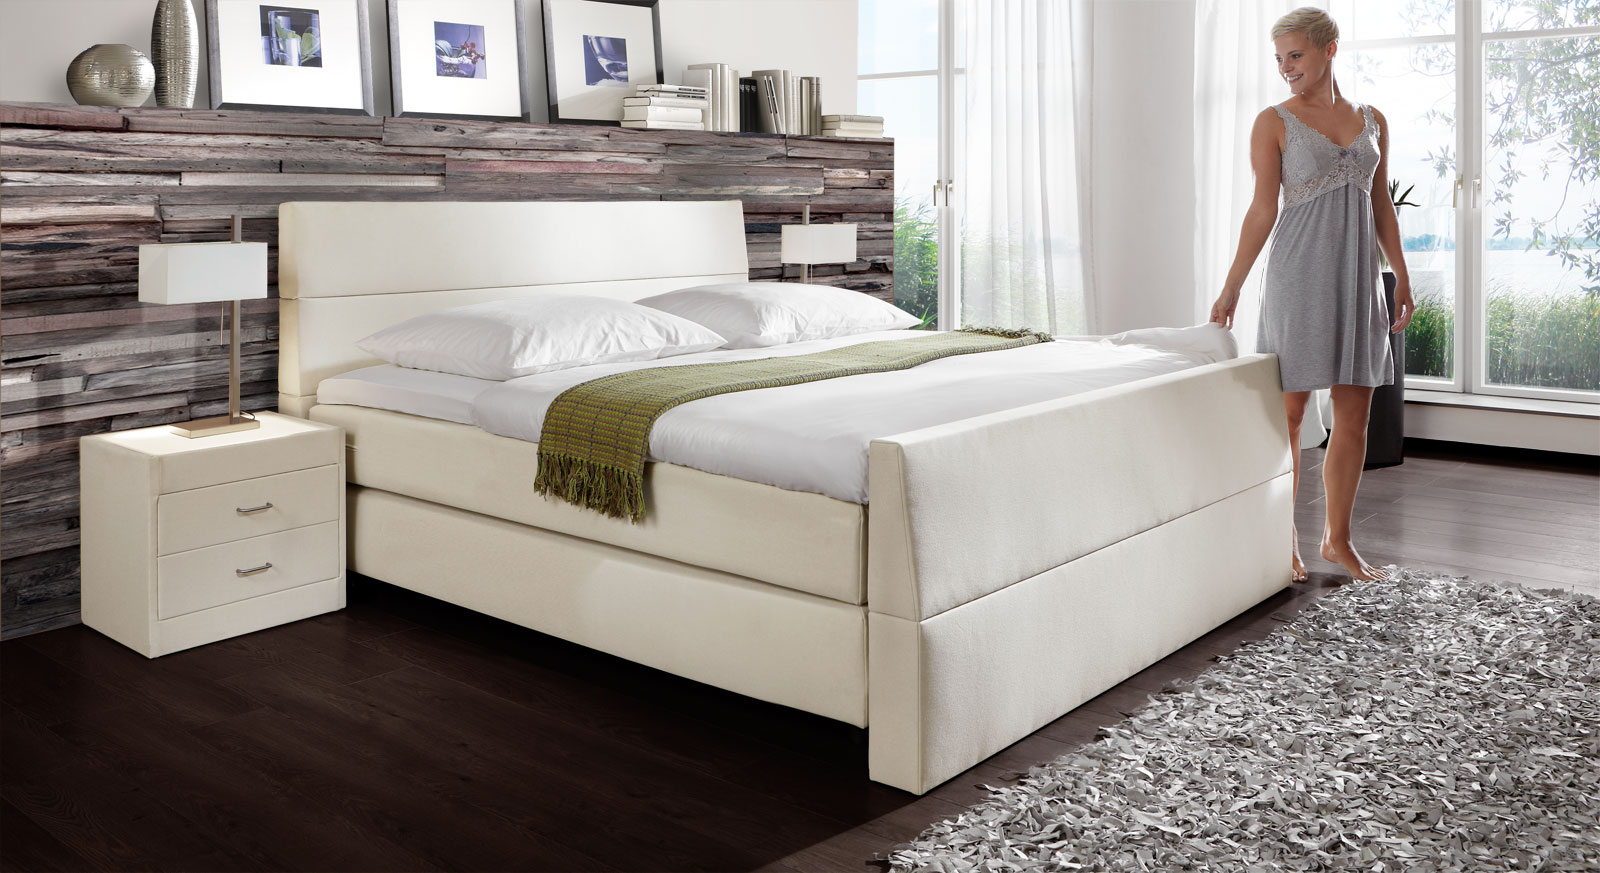 Boxspringbett Vineyard mit Airboxx in Creme